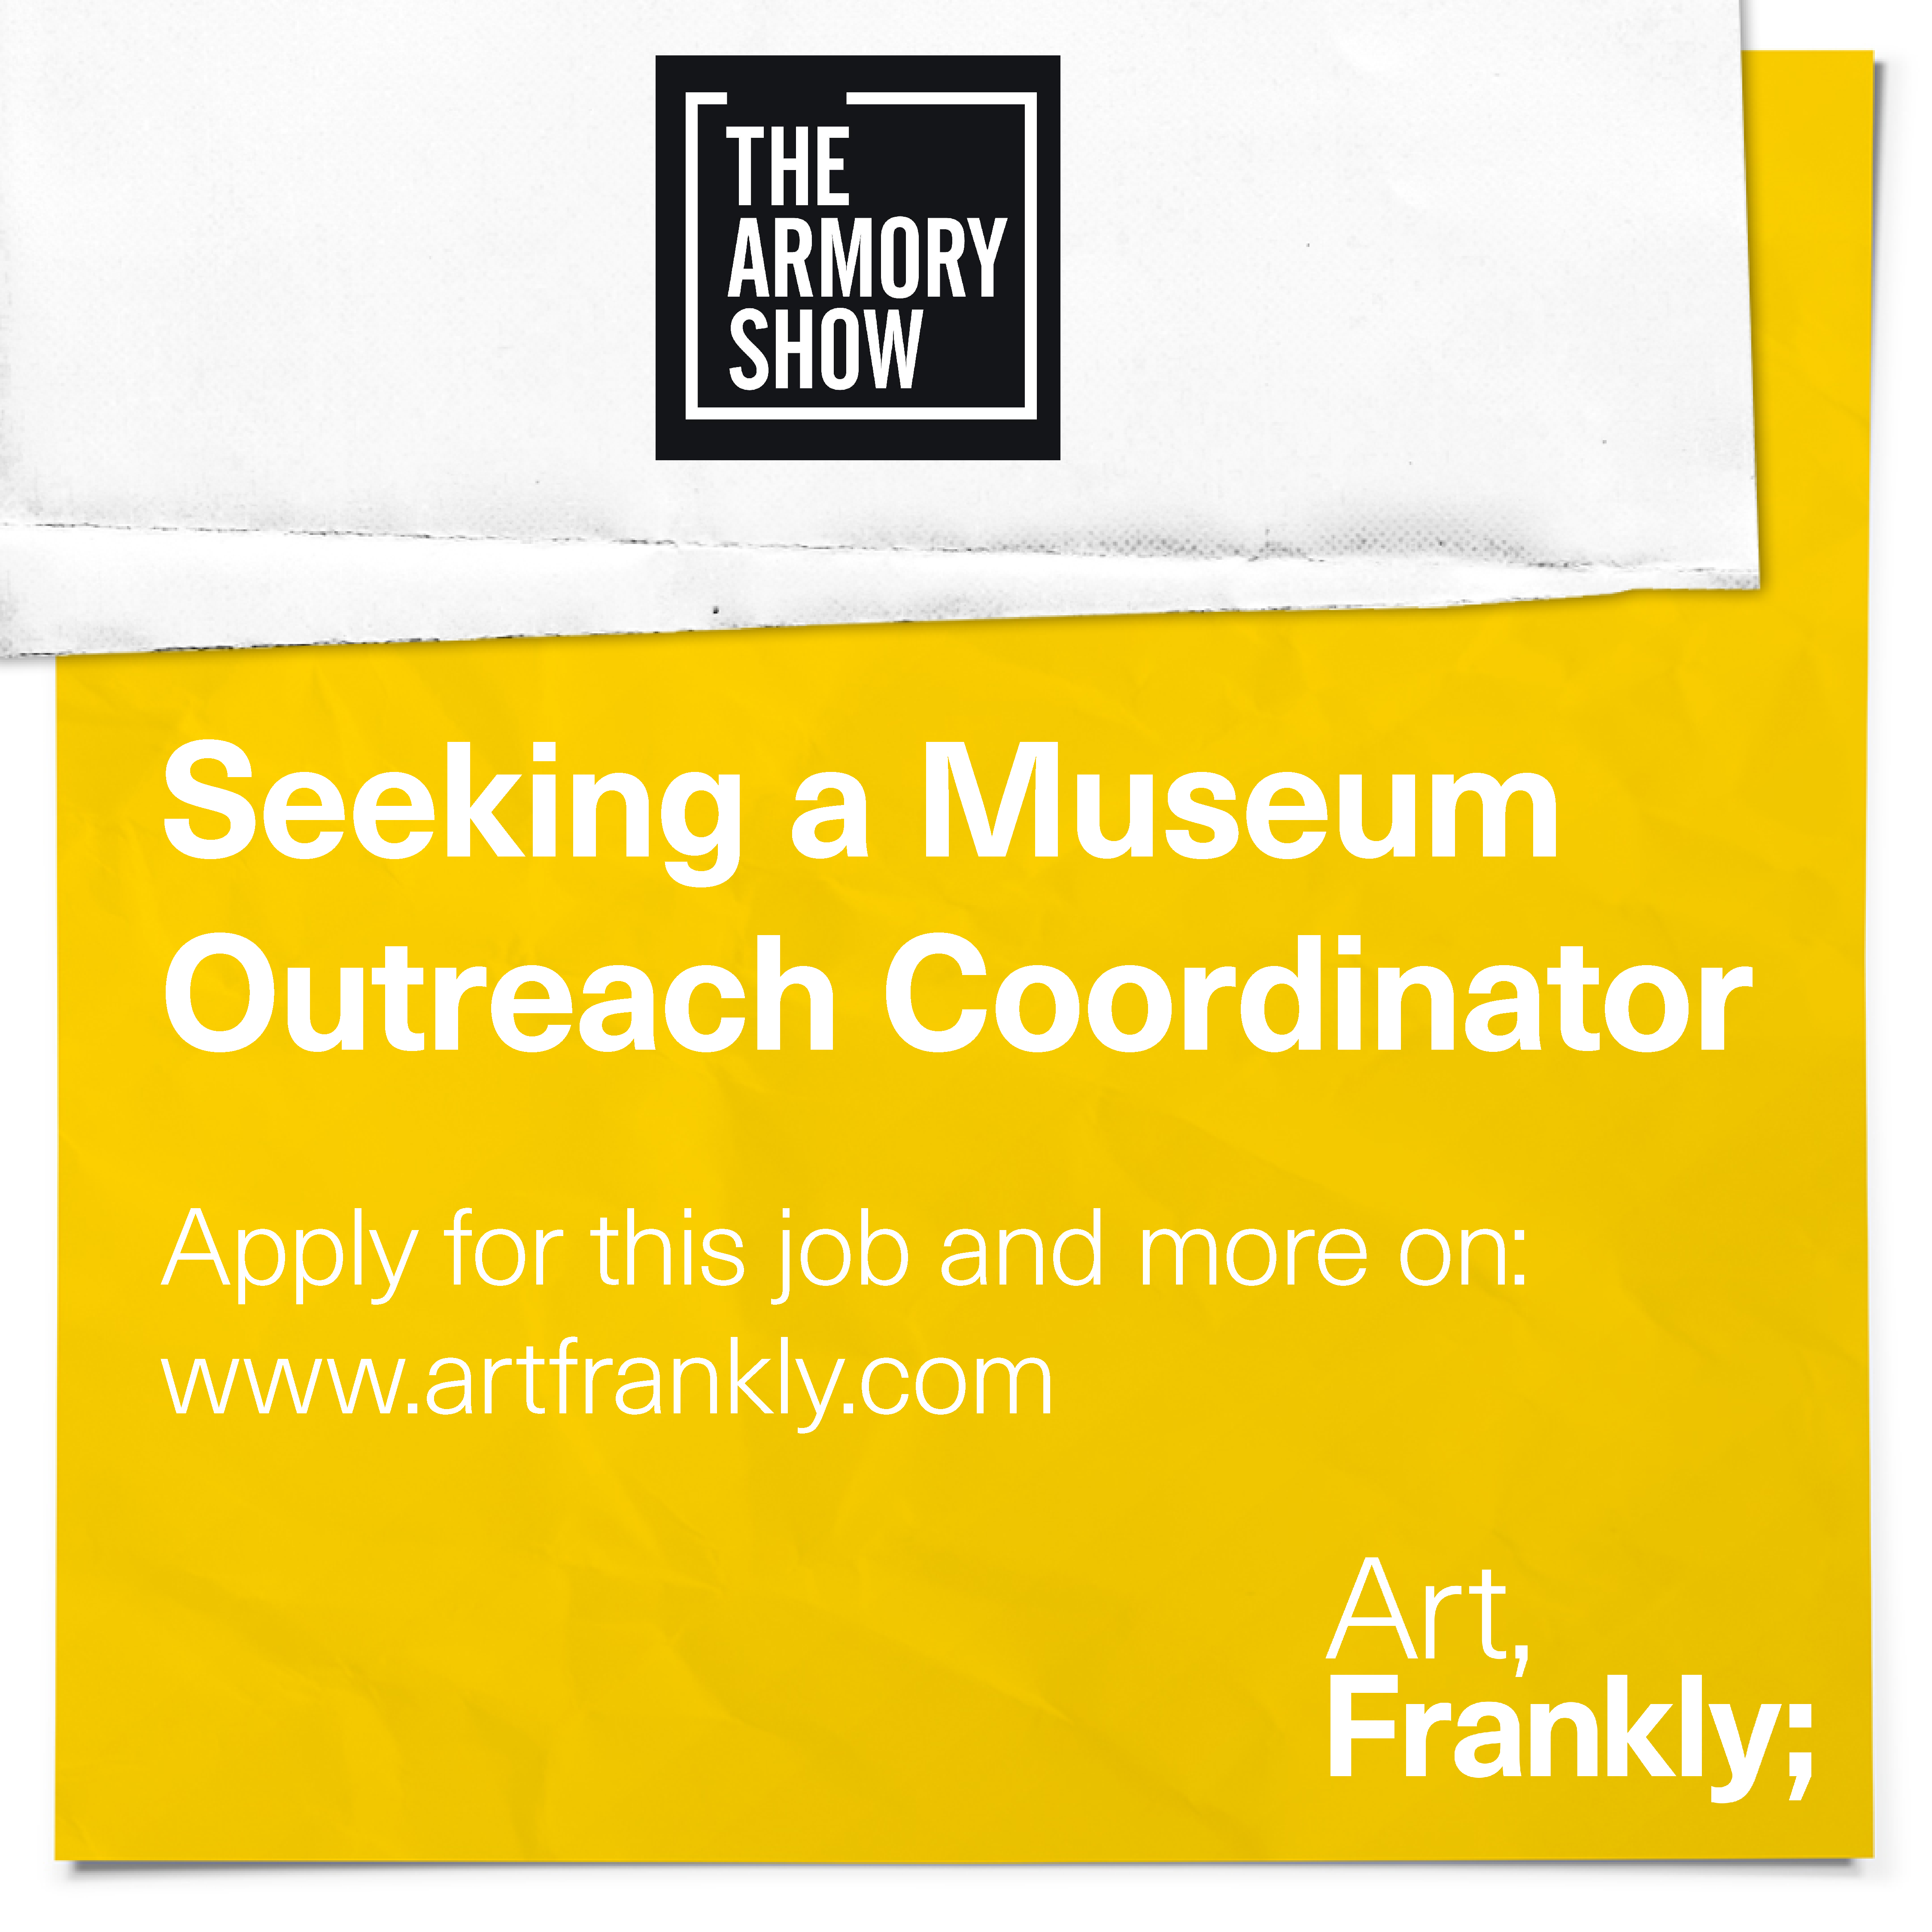 The Armory Show Museum outreach coordinator